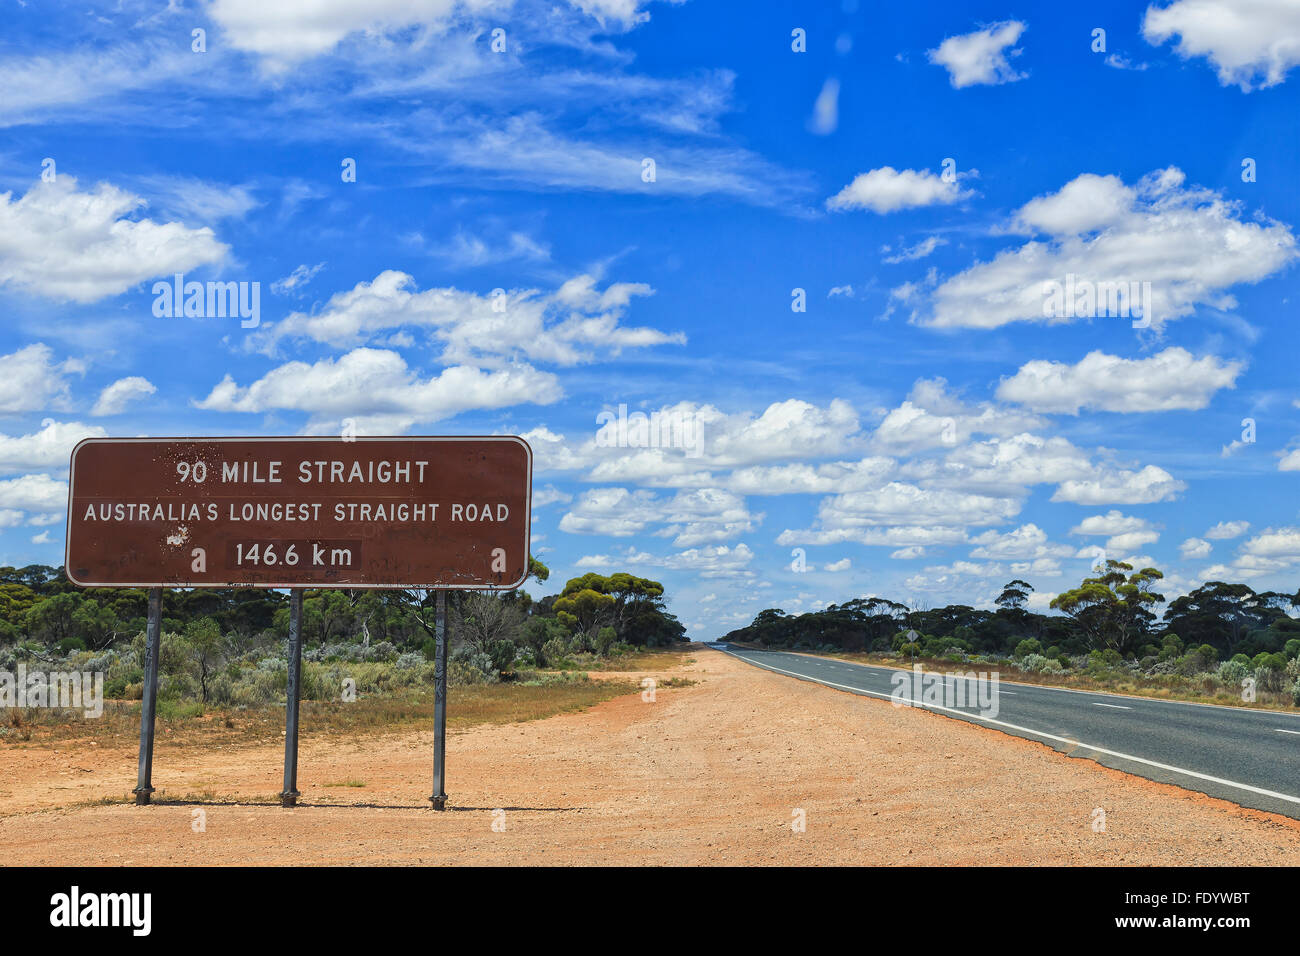 brown information roadsign in Western Australia nullarbor plain along Eyre highway about 90 mile straight road ahead - Stock Image